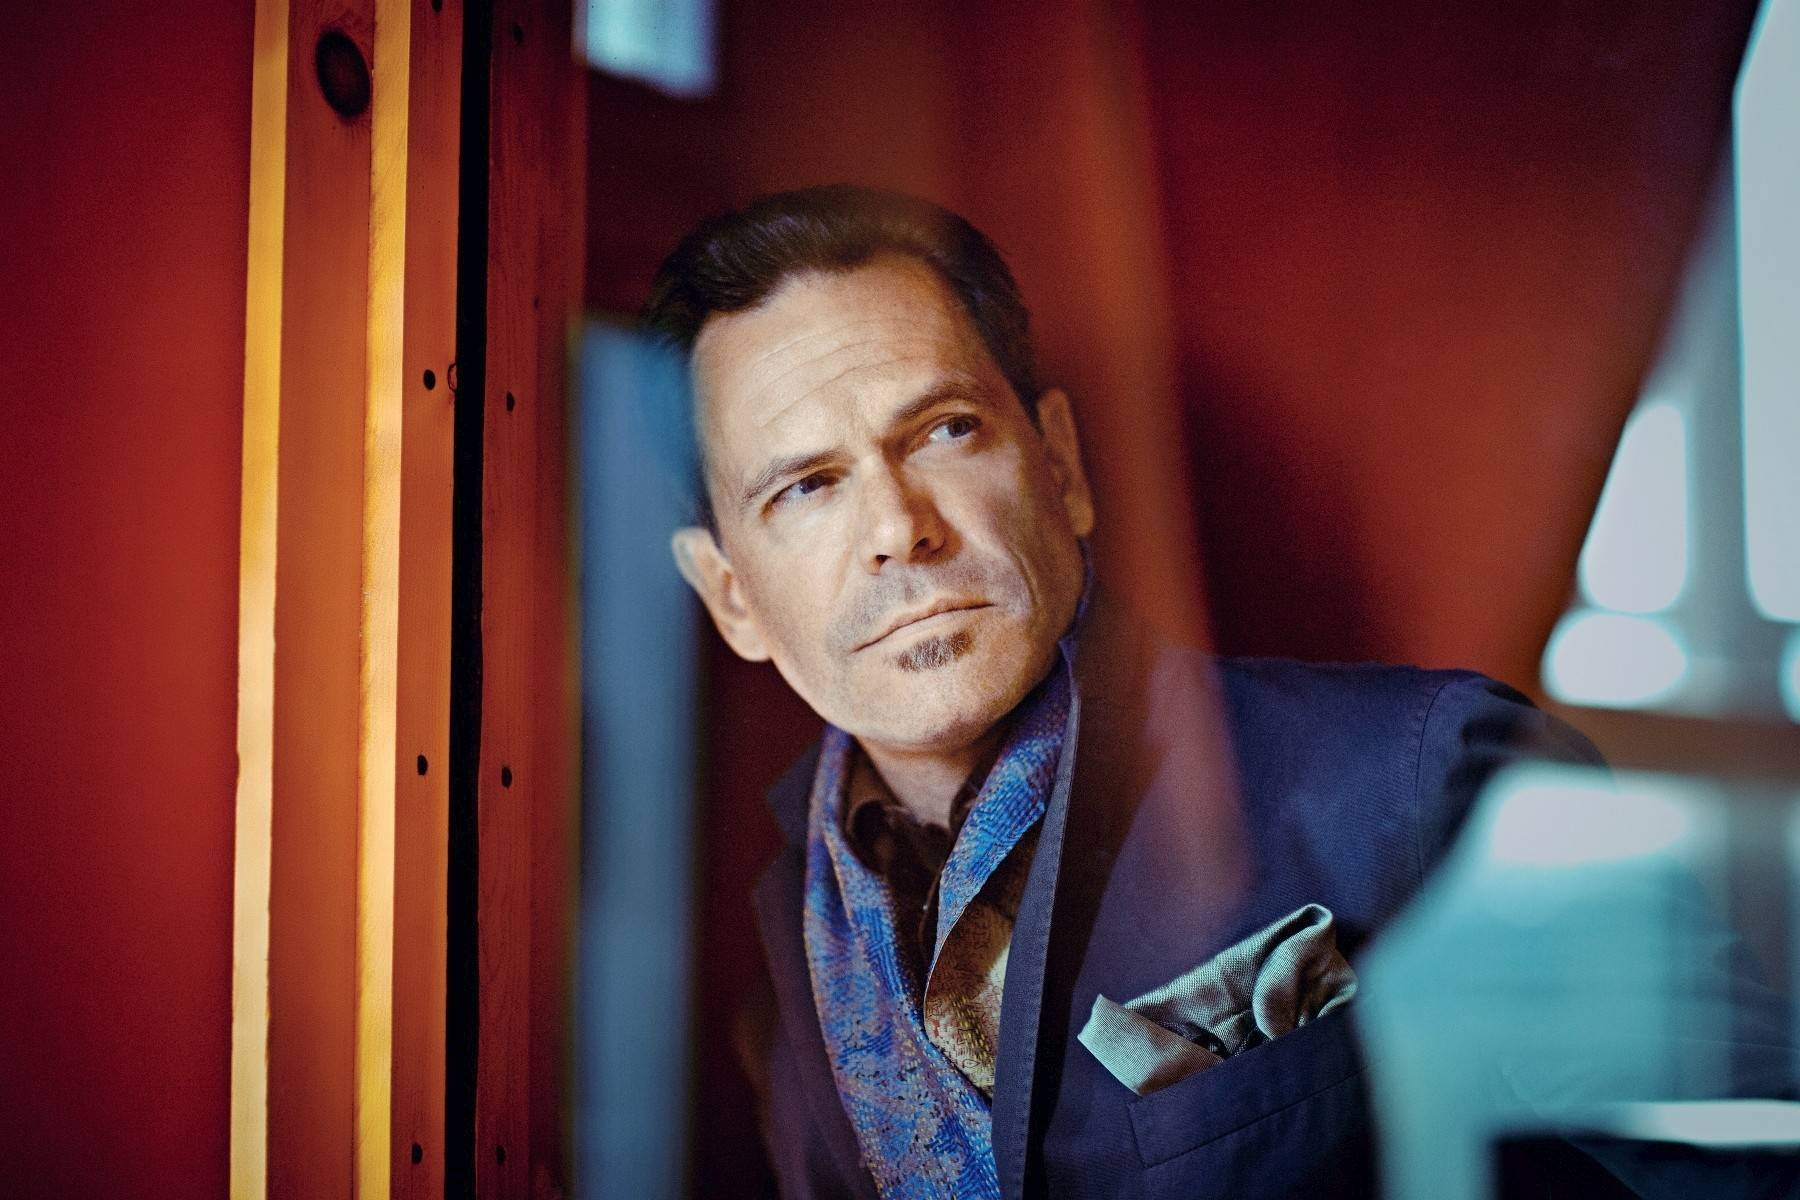 Grammy Award-winner Kurt Elling is set to perform at 4 p.m. Sunday, Feb. 16, at College of DuPage's McAninch Arts Center in Glen Ellyn.